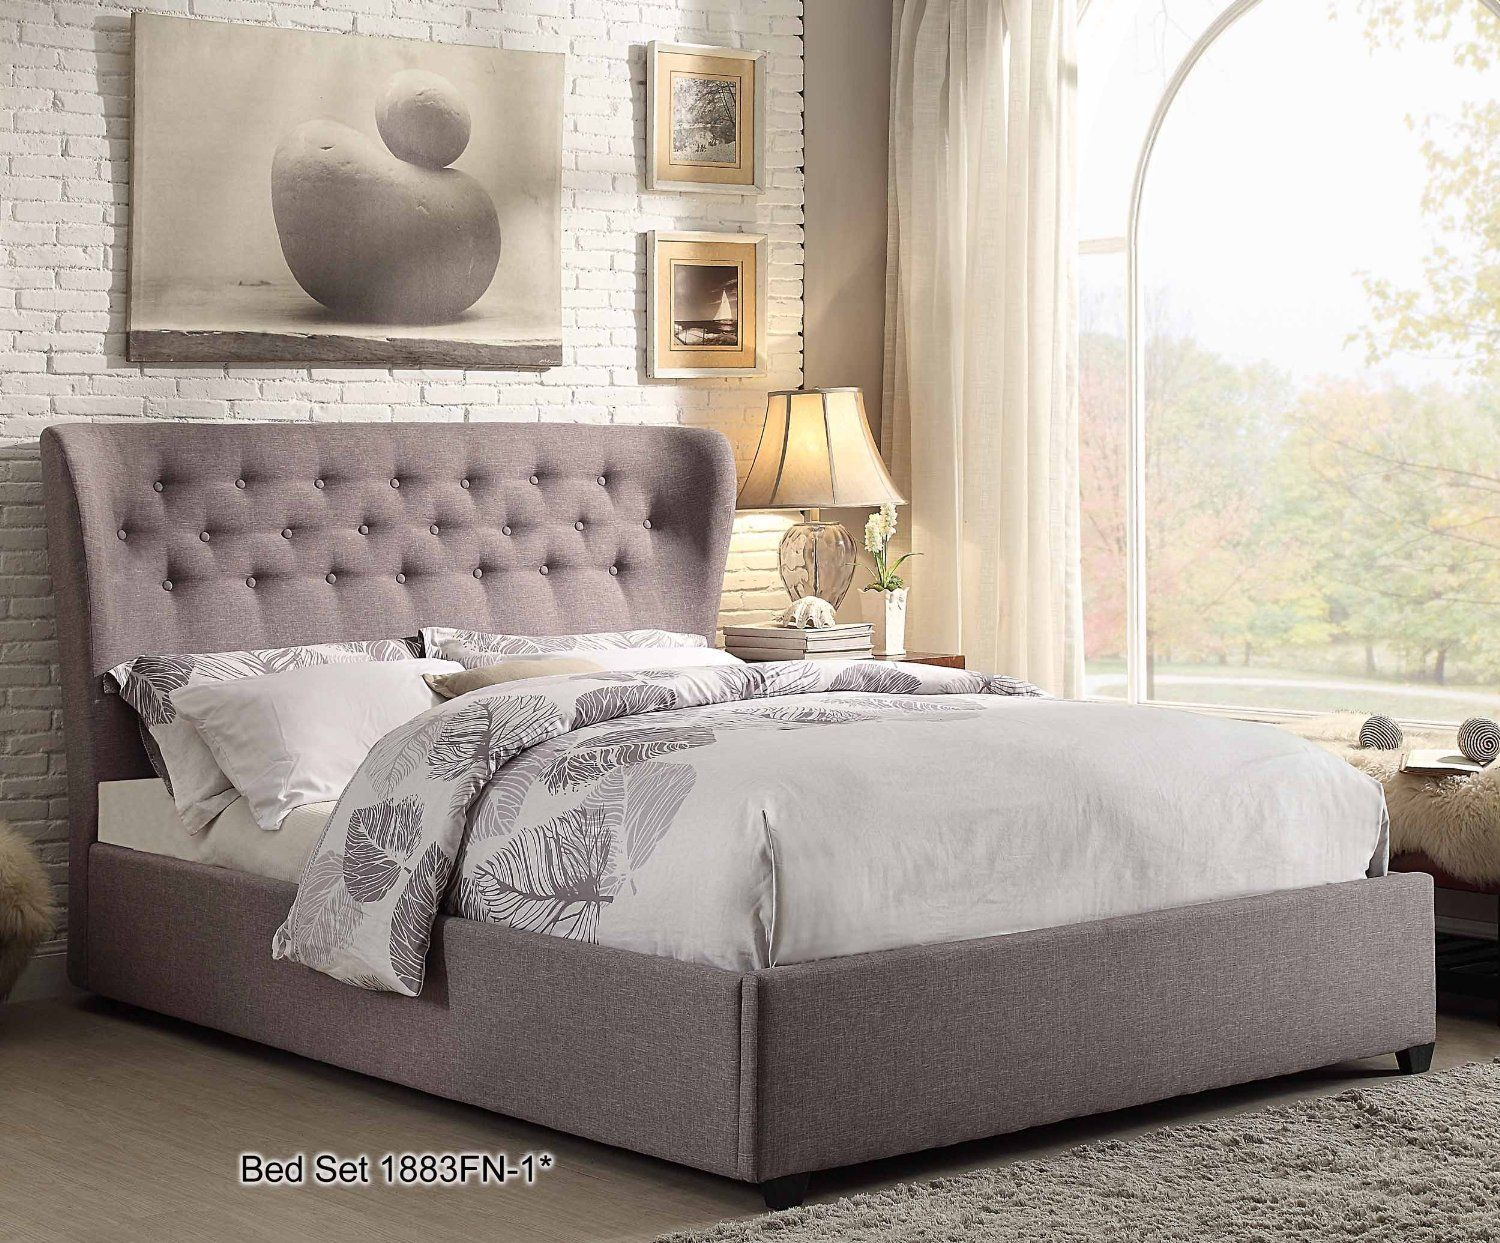 Homelegance 1883N1* Button Tufted Wing